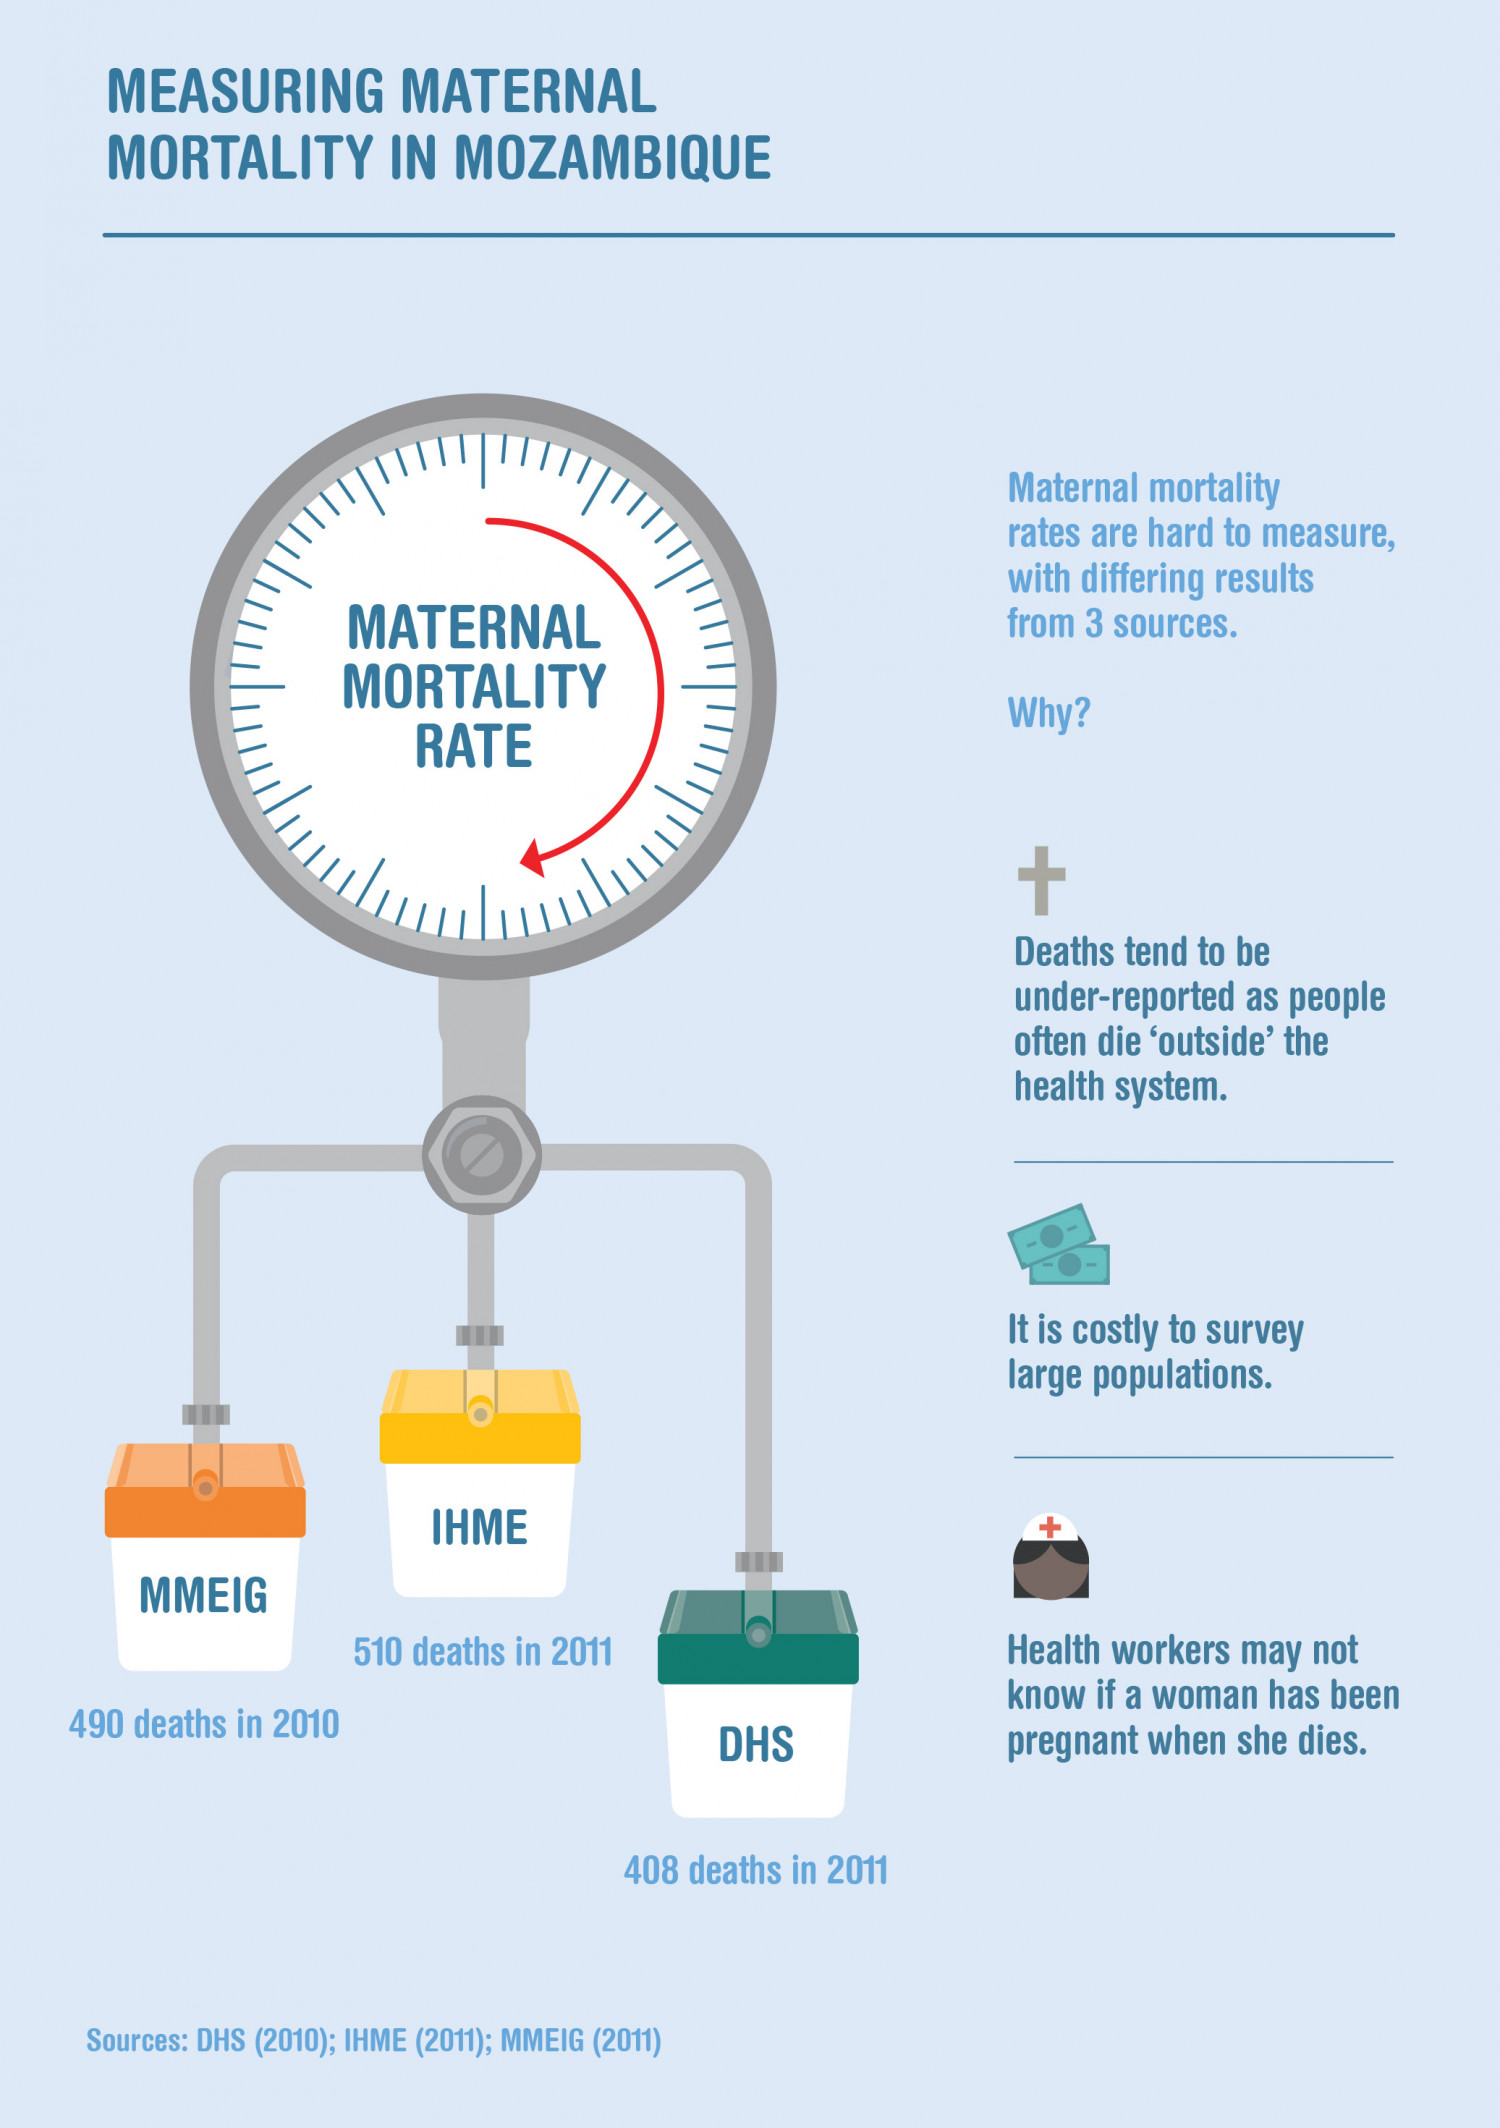 Measuring maternal mortality in Mozambique Infographic